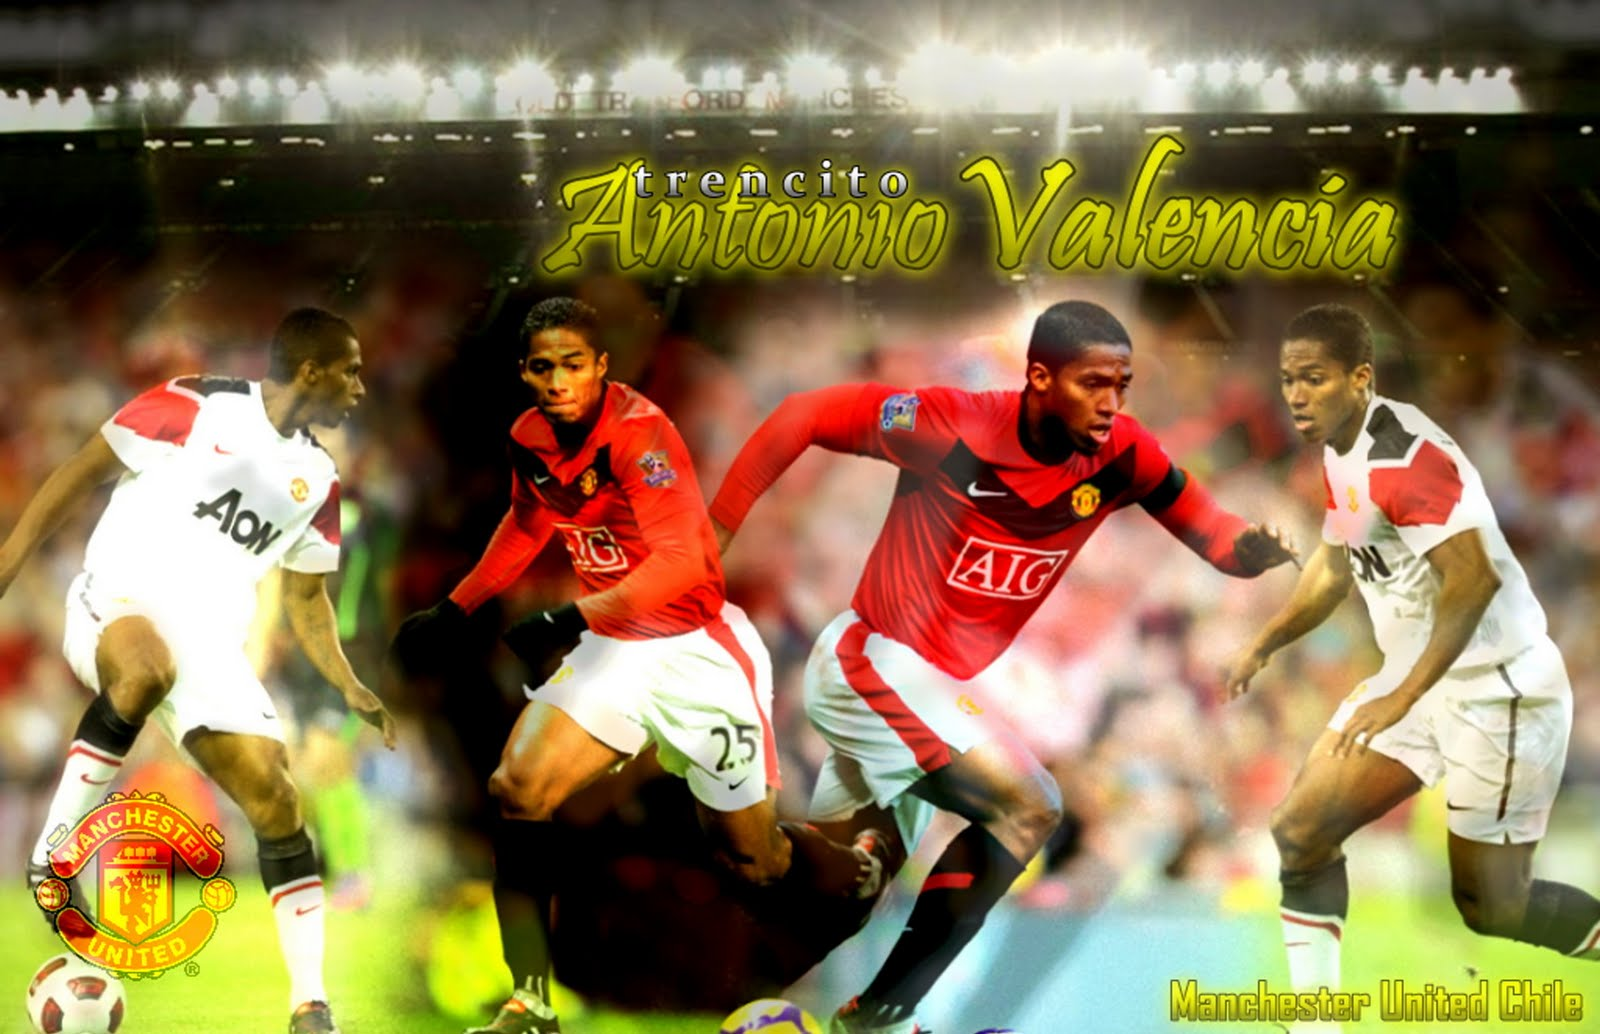 antonio valencia wallpaper, manchester ubordernited winger, eccuador footballer, wigan